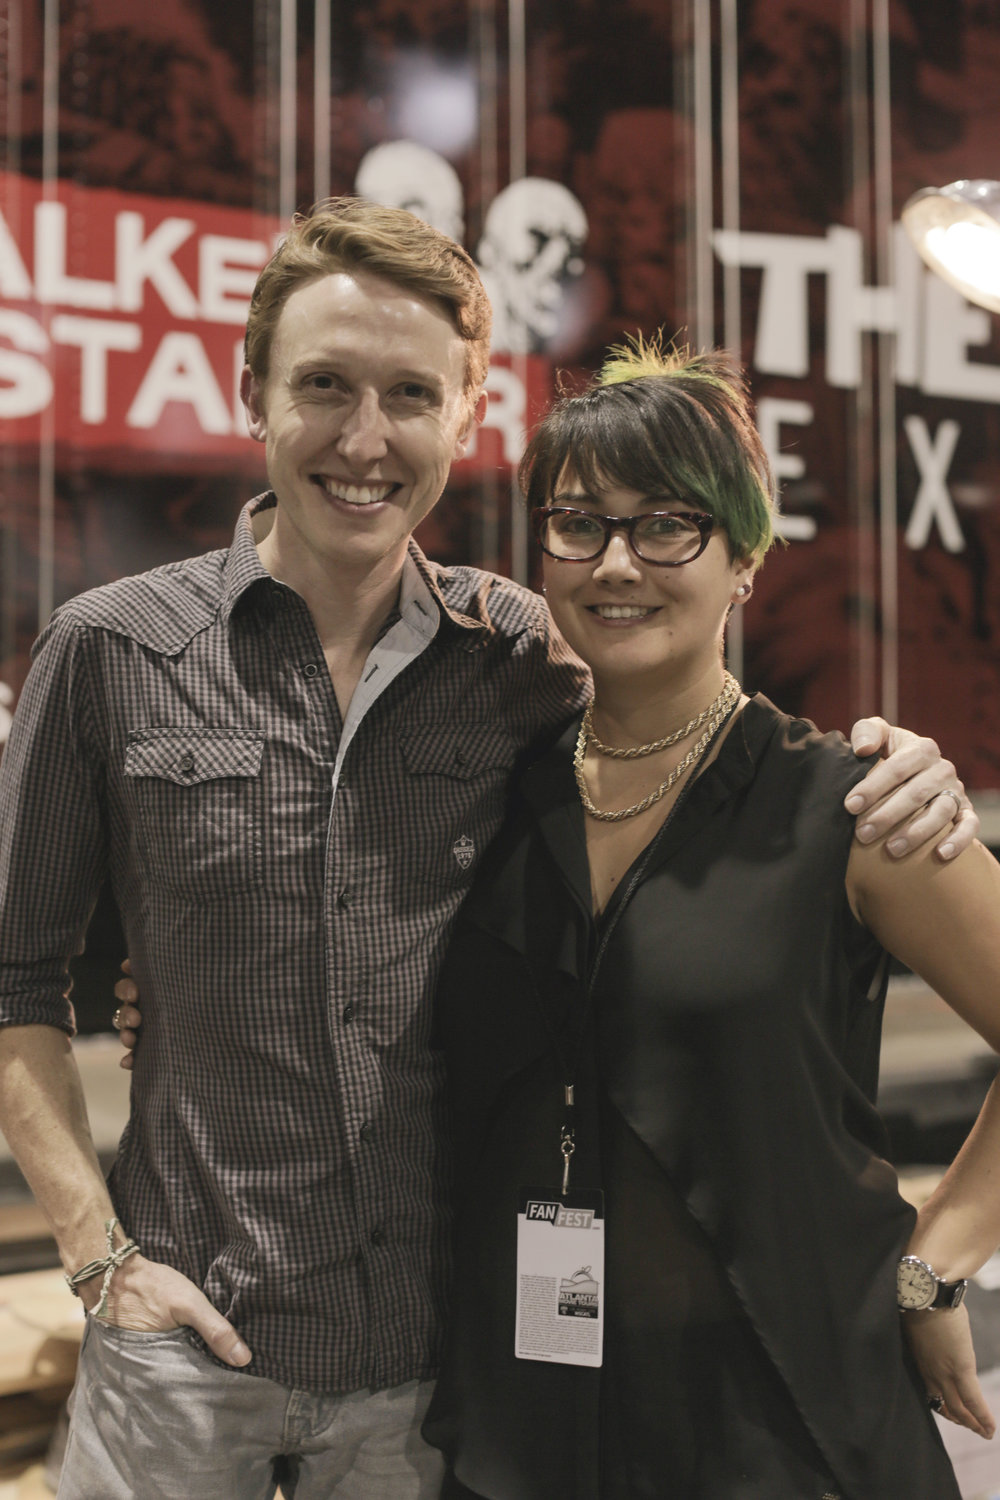 The Walking Dead Experience - Jordan Woods Robinson and I had previously worked together for Blue Man Group.